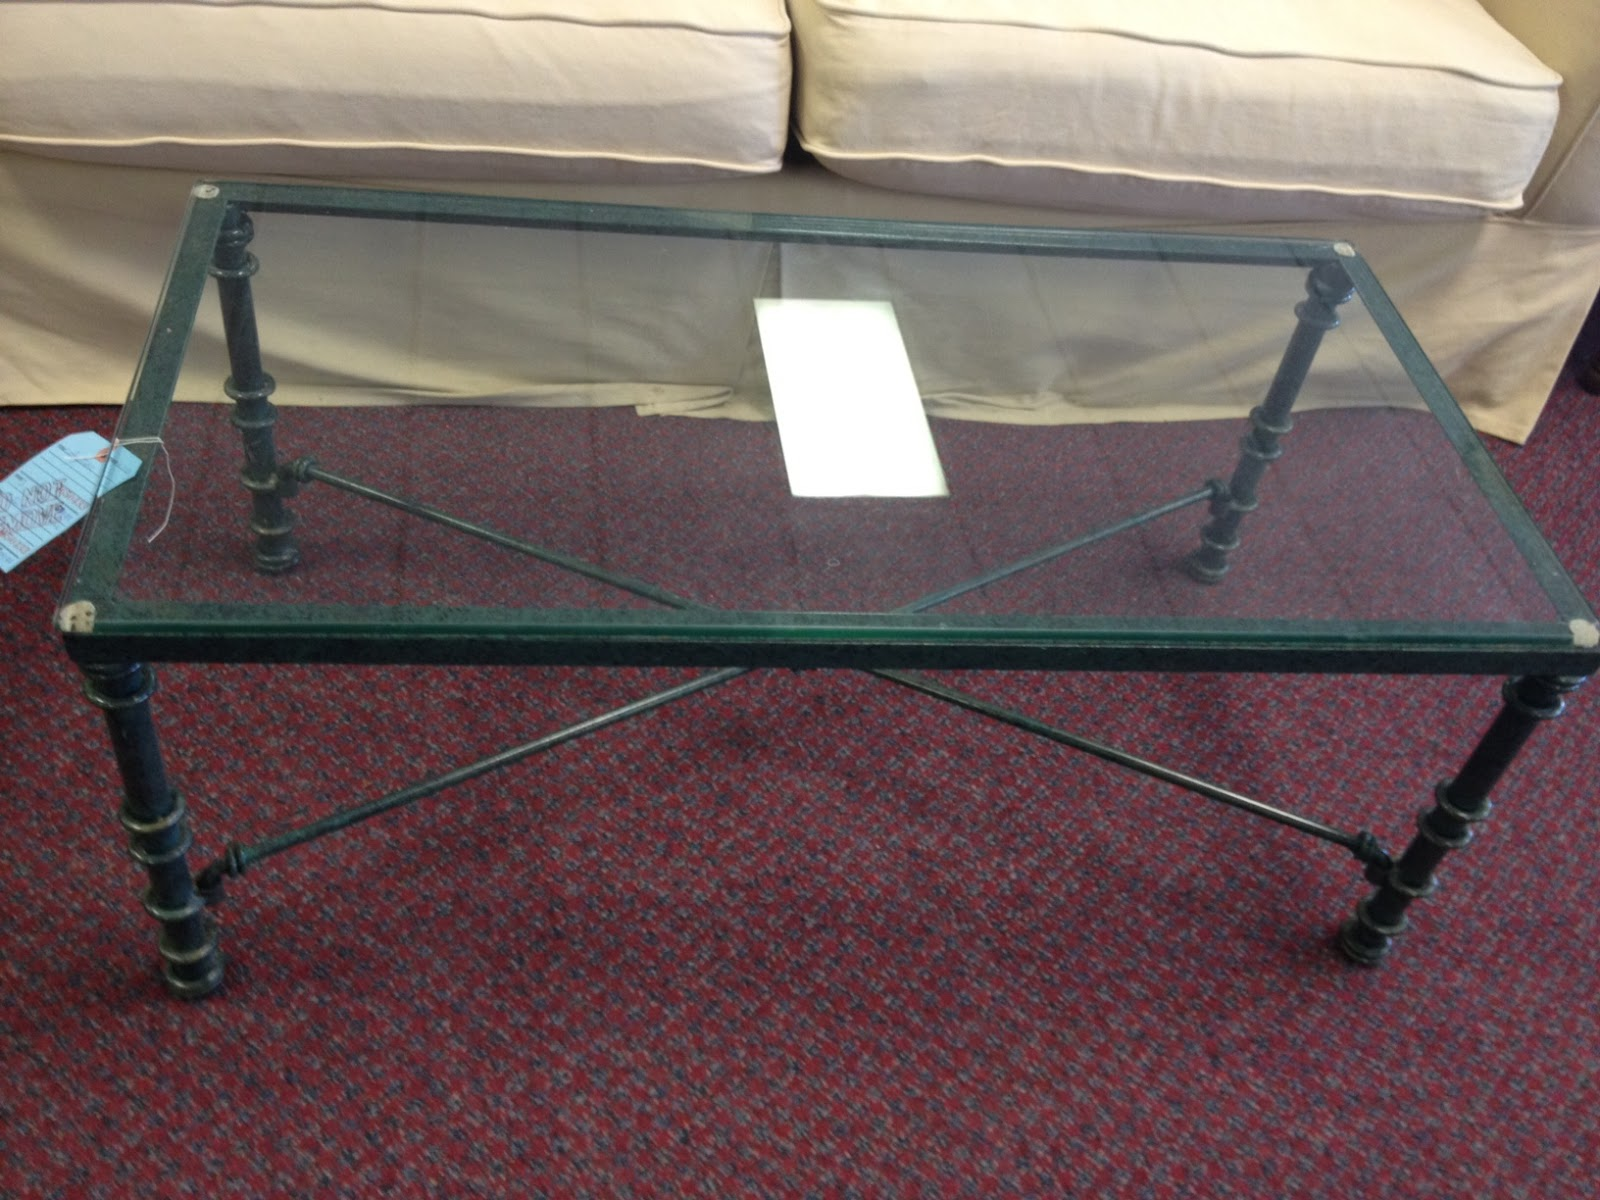 Richmond Thrifter Coffee table that needs a bling factor